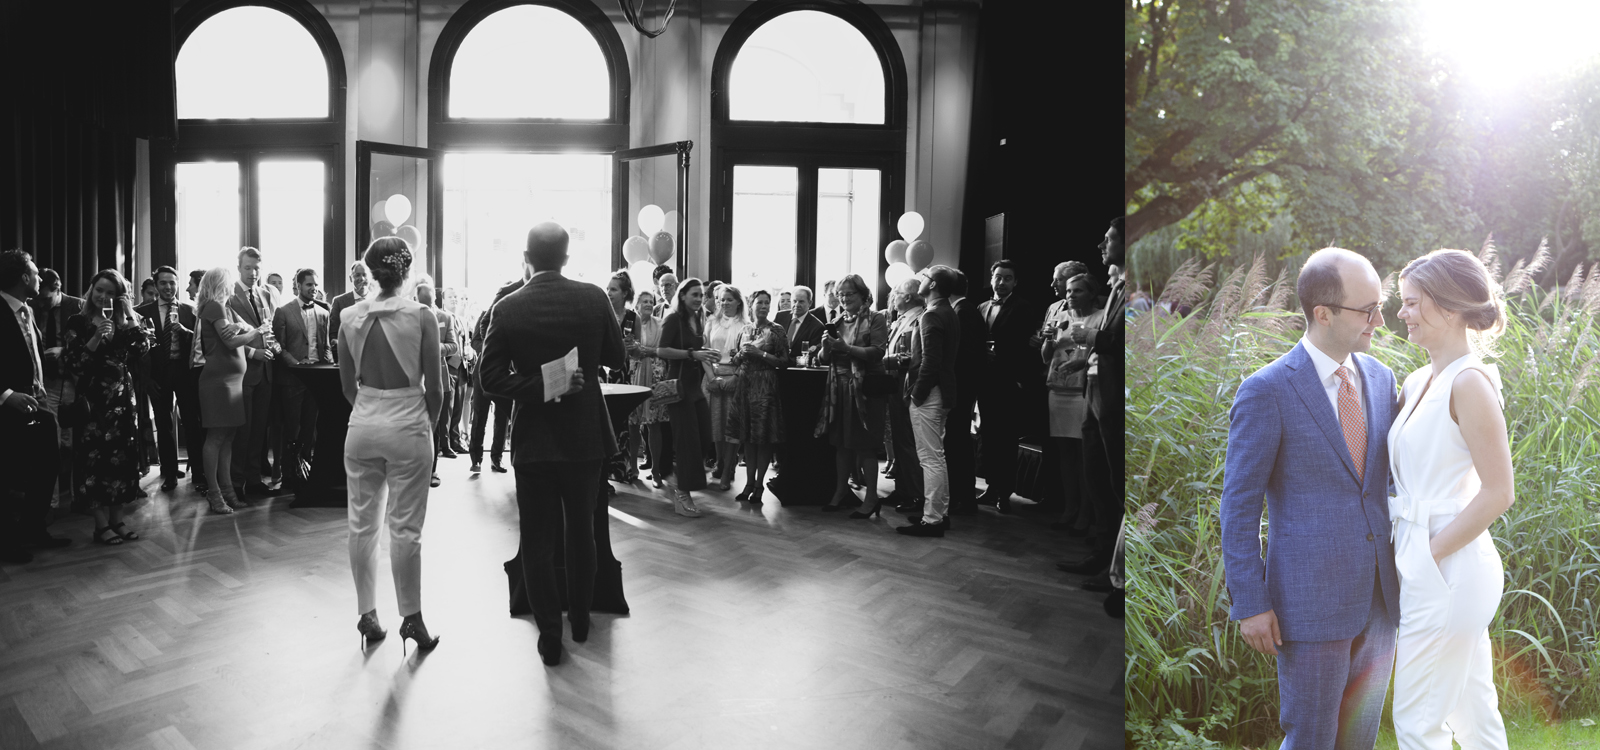 Wedding in the Vondelpark of Amsterdam. Photography by a professional wedding photographer